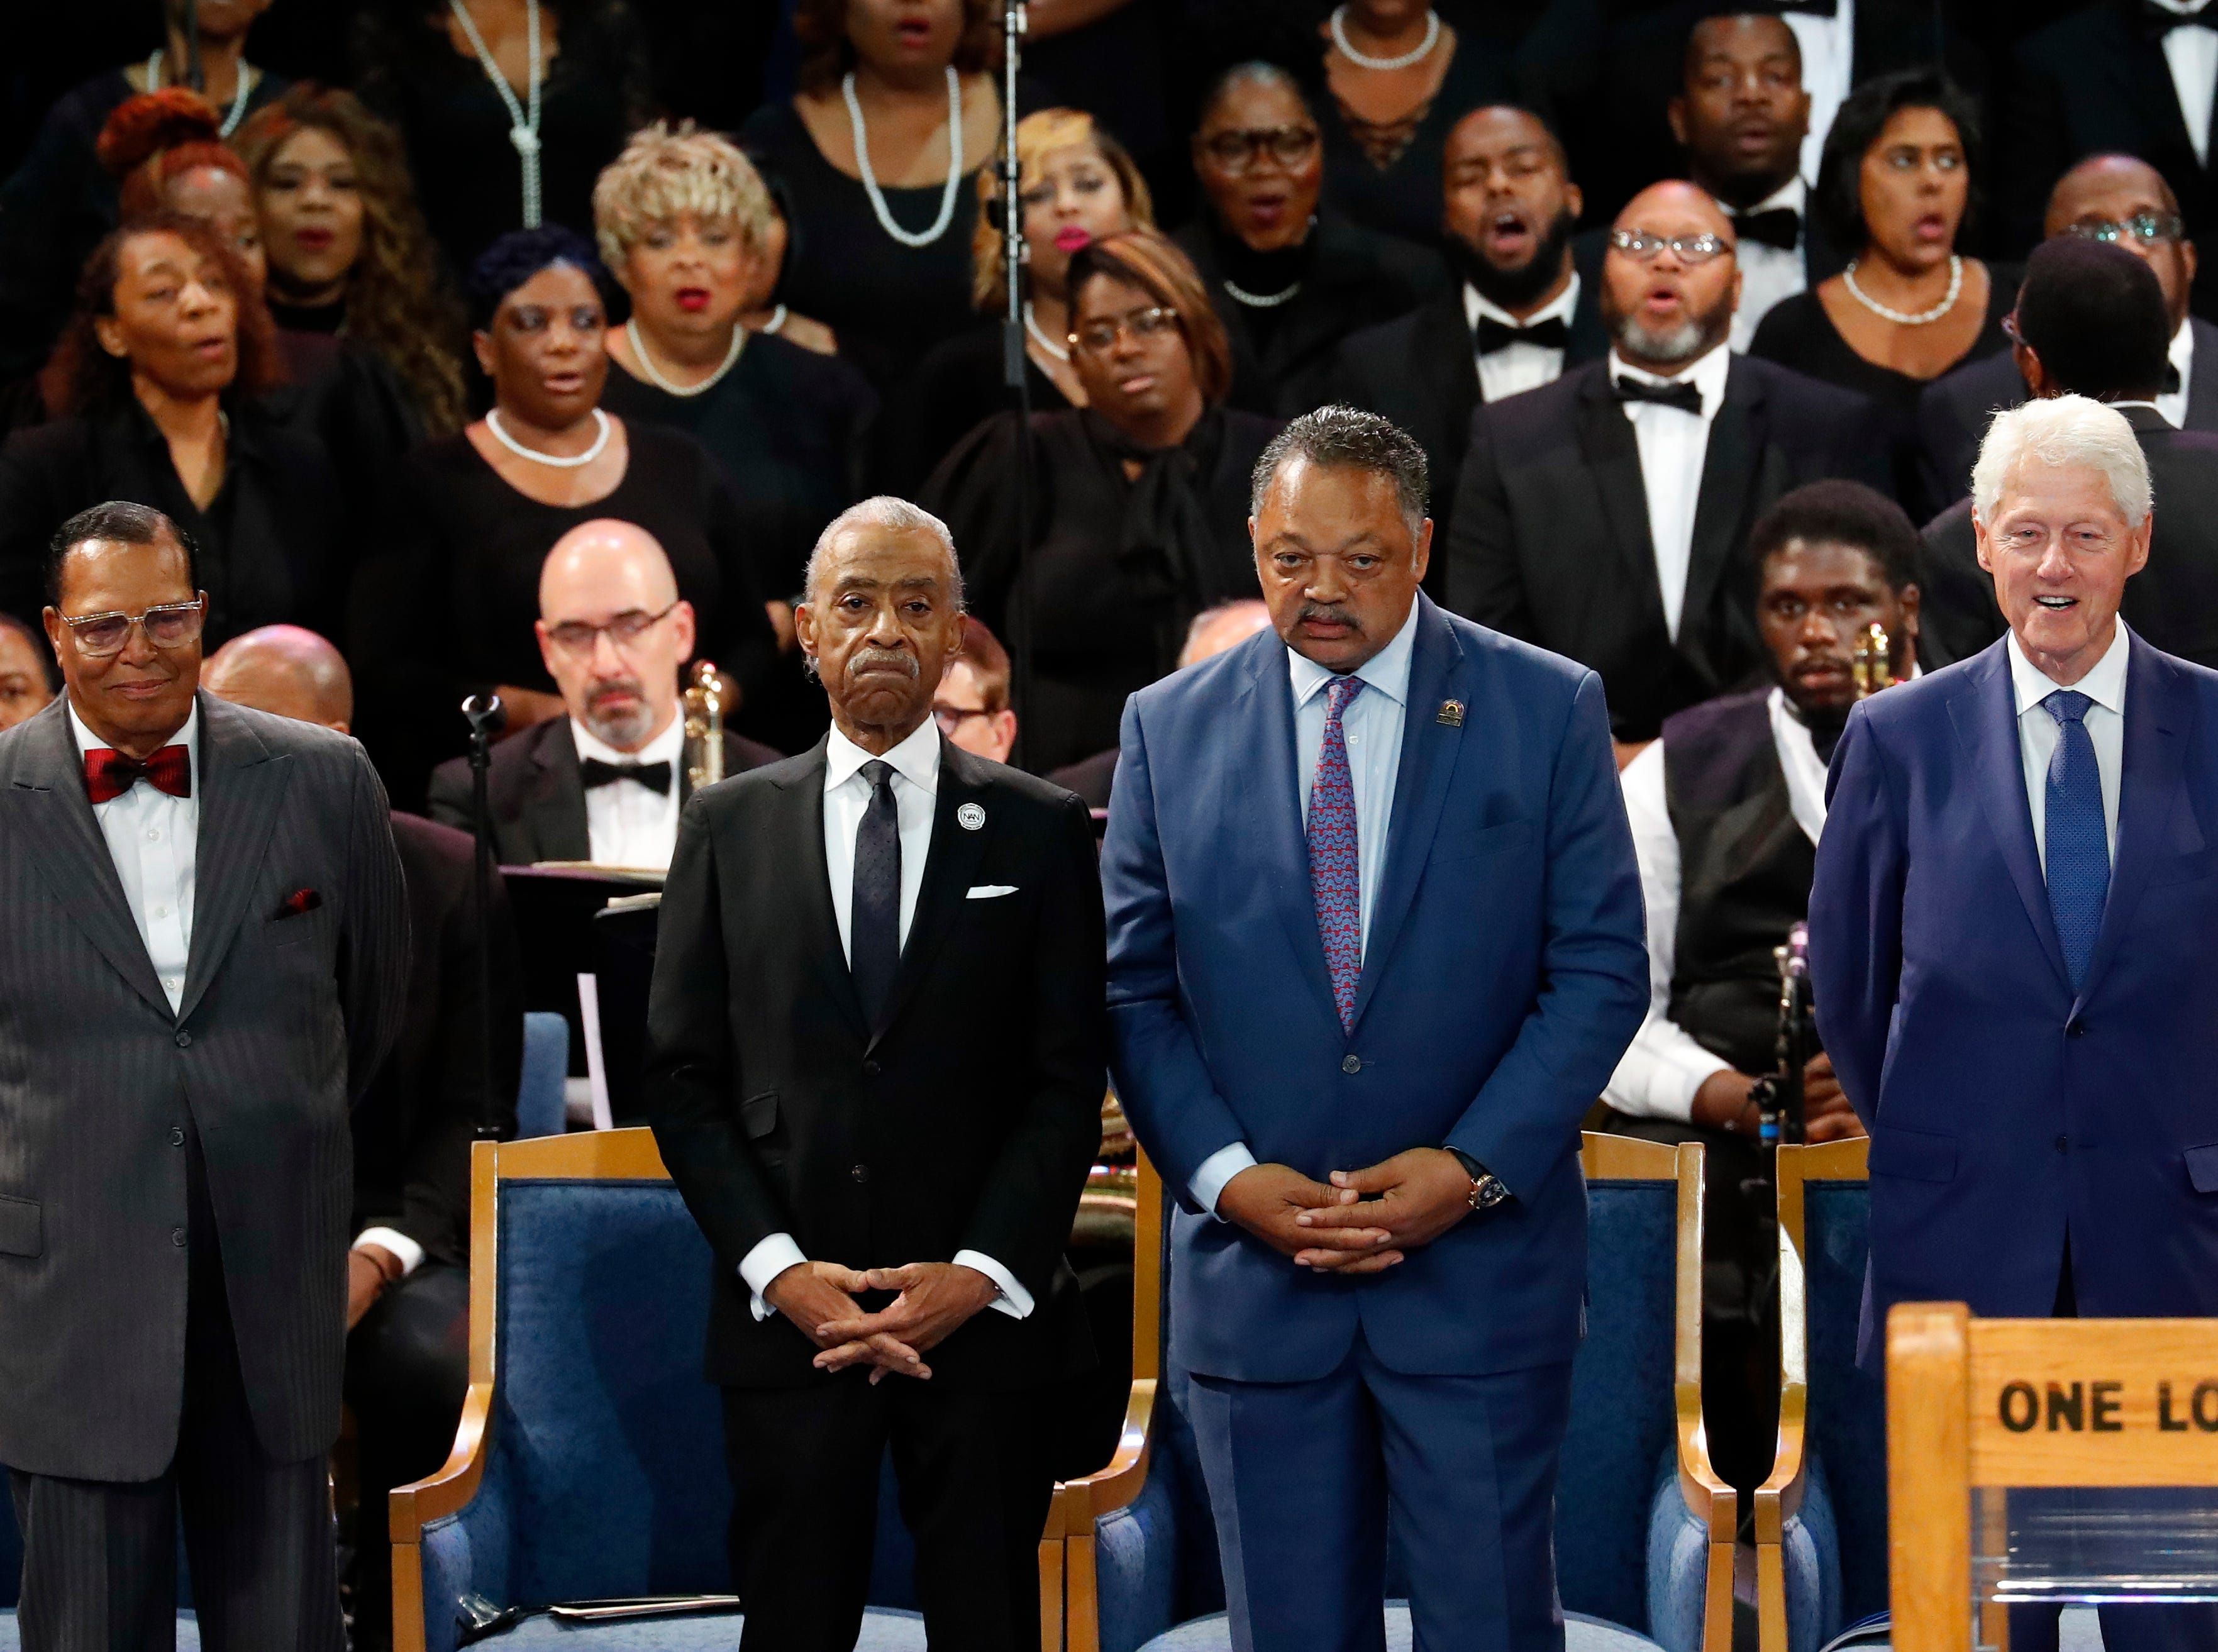 Louis Farrakhan, from left, Rev. Al Sharpton, Rev. Jesse Jackson and former President Bill Clinton attend the funeral service for Aretha Franklin at Greater Grace Temple, Friday, Aug. 31, 2018, in Detroit. Franklin died Aug. 16, 2018 of pancreatic cancer at the age of 76. (AP Photo/Paul Sancya) ORG XMIT: MIJR101